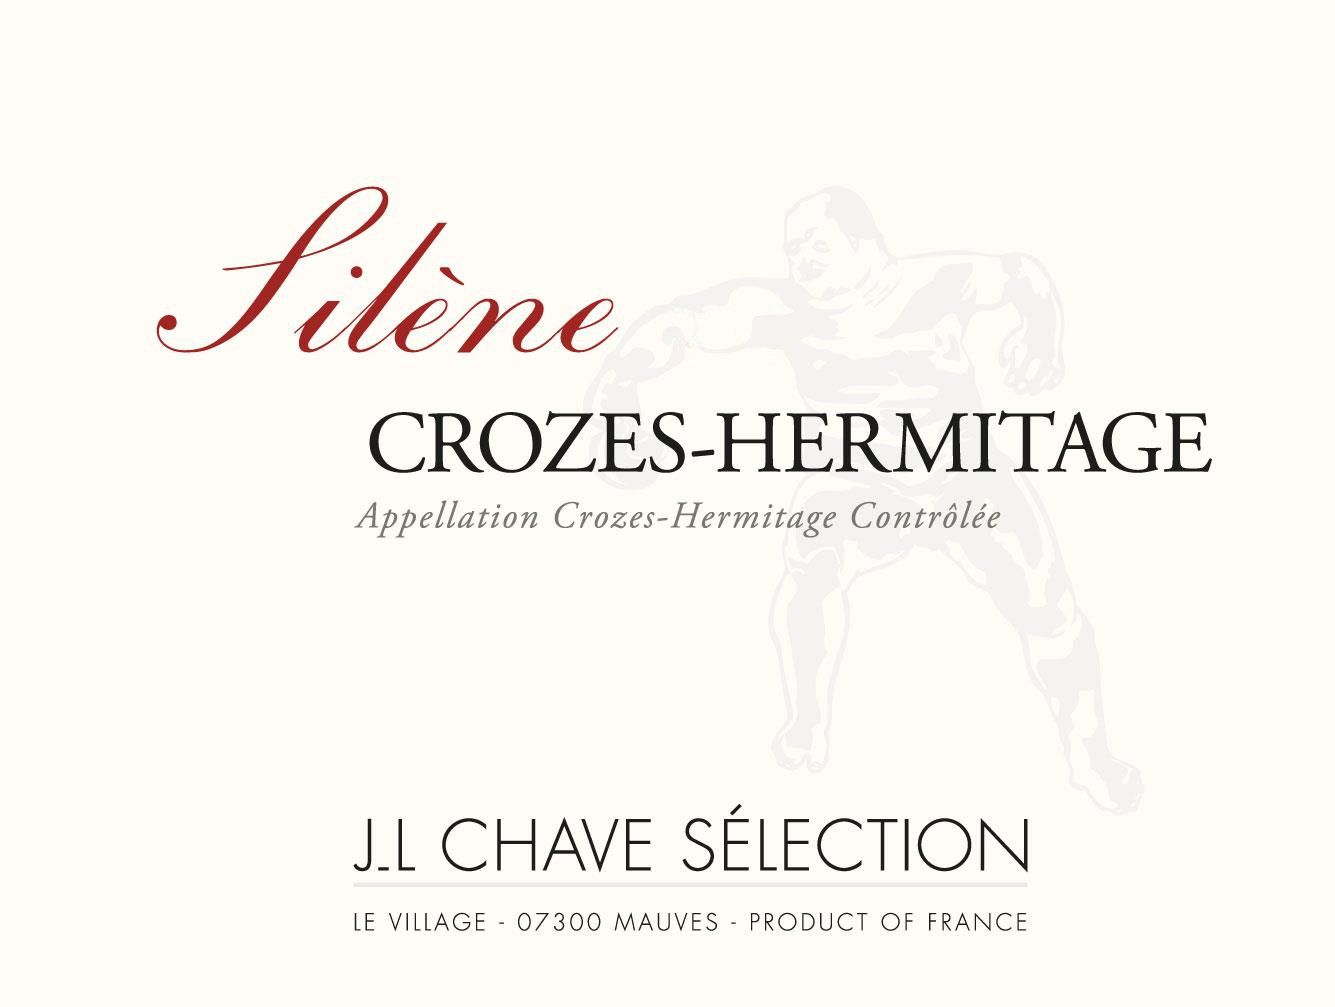 Jean-Louis Chave Selection Crozes-Hermitage Silene 2018  Front Label